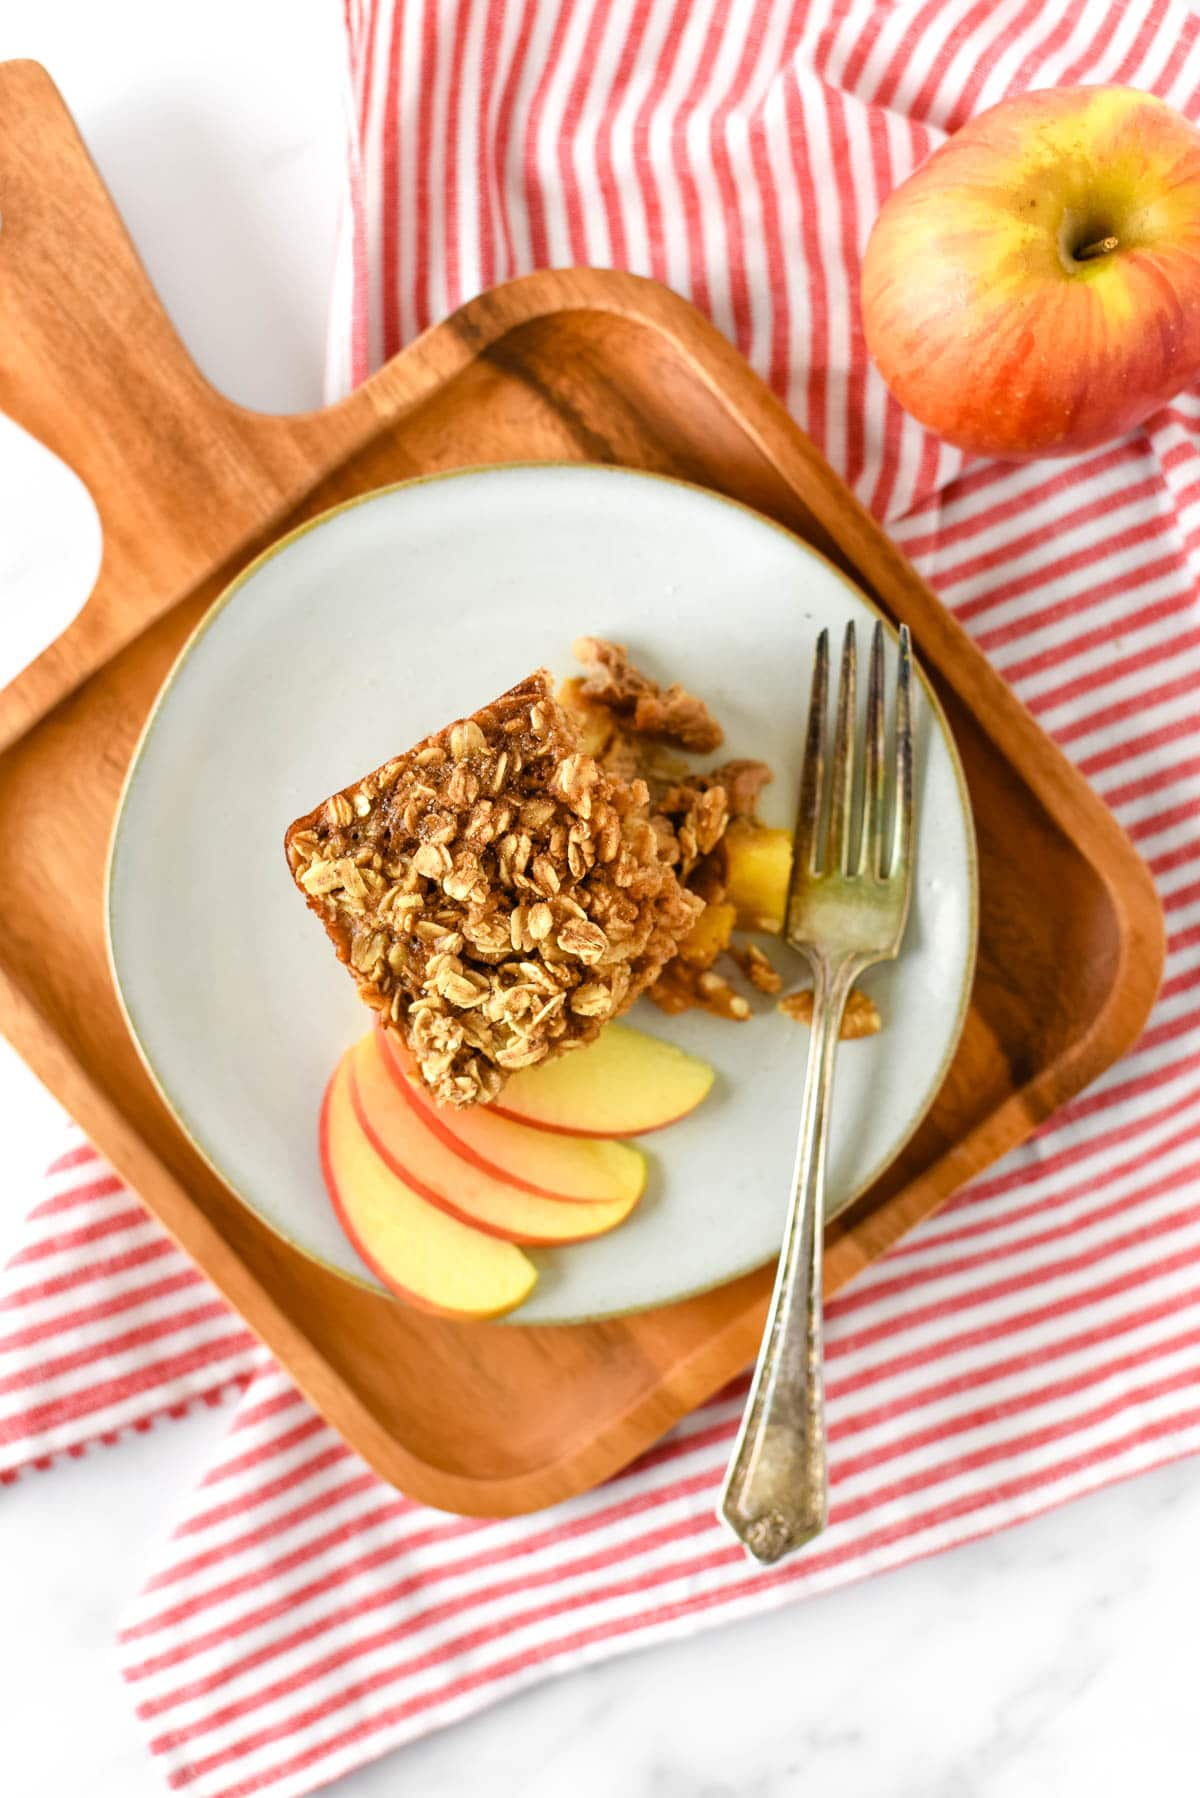 baked apple oatmeal on plate with fork